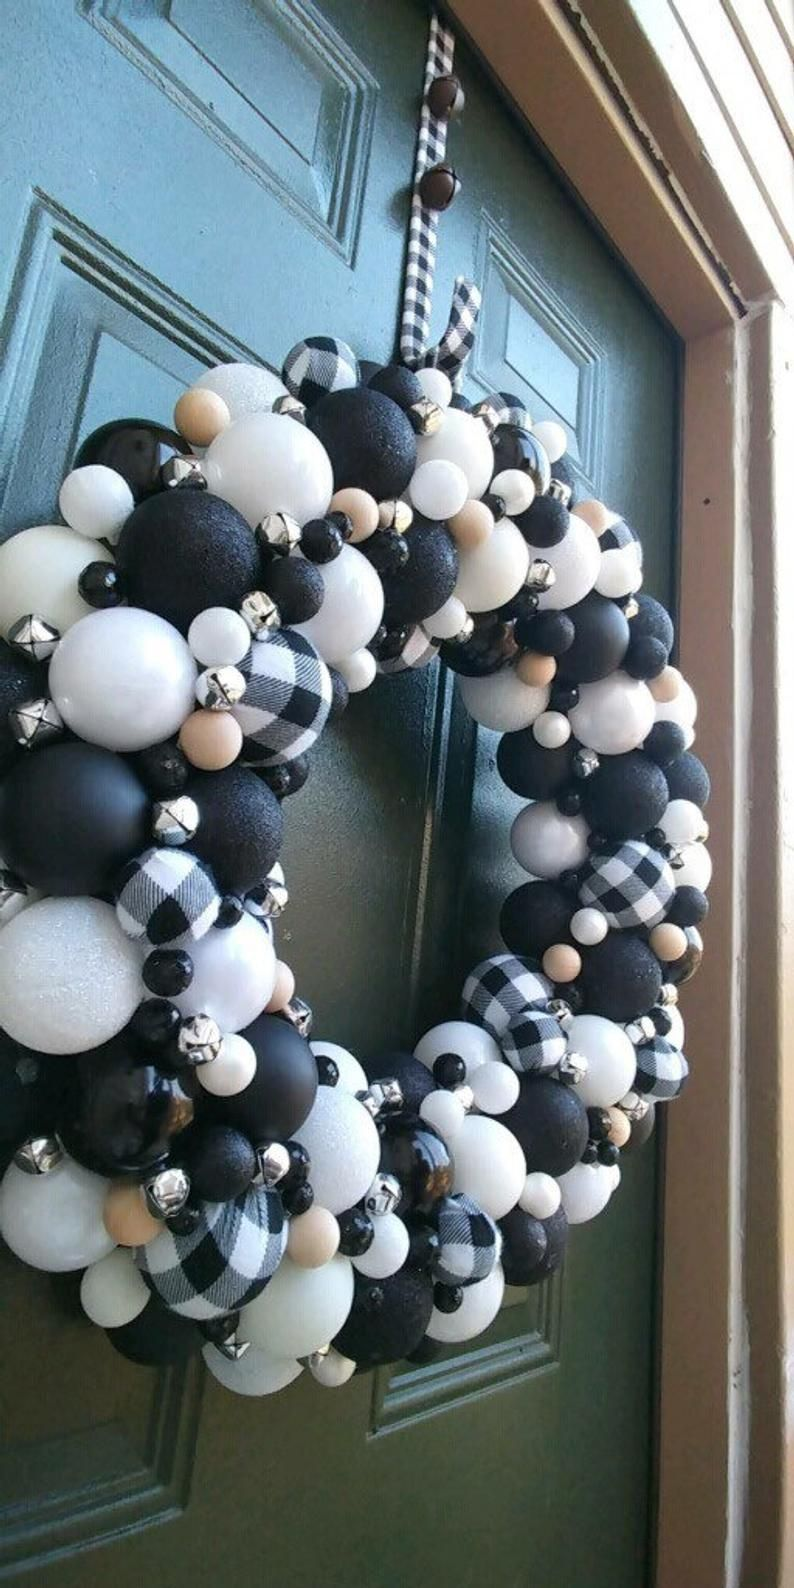 Gorgeous Handmade Buffalo Check Ornaments, Black, and White Christmas Ornament Wreath! Bauble Wreath! Holiday Wreath! Ornament Wreath!